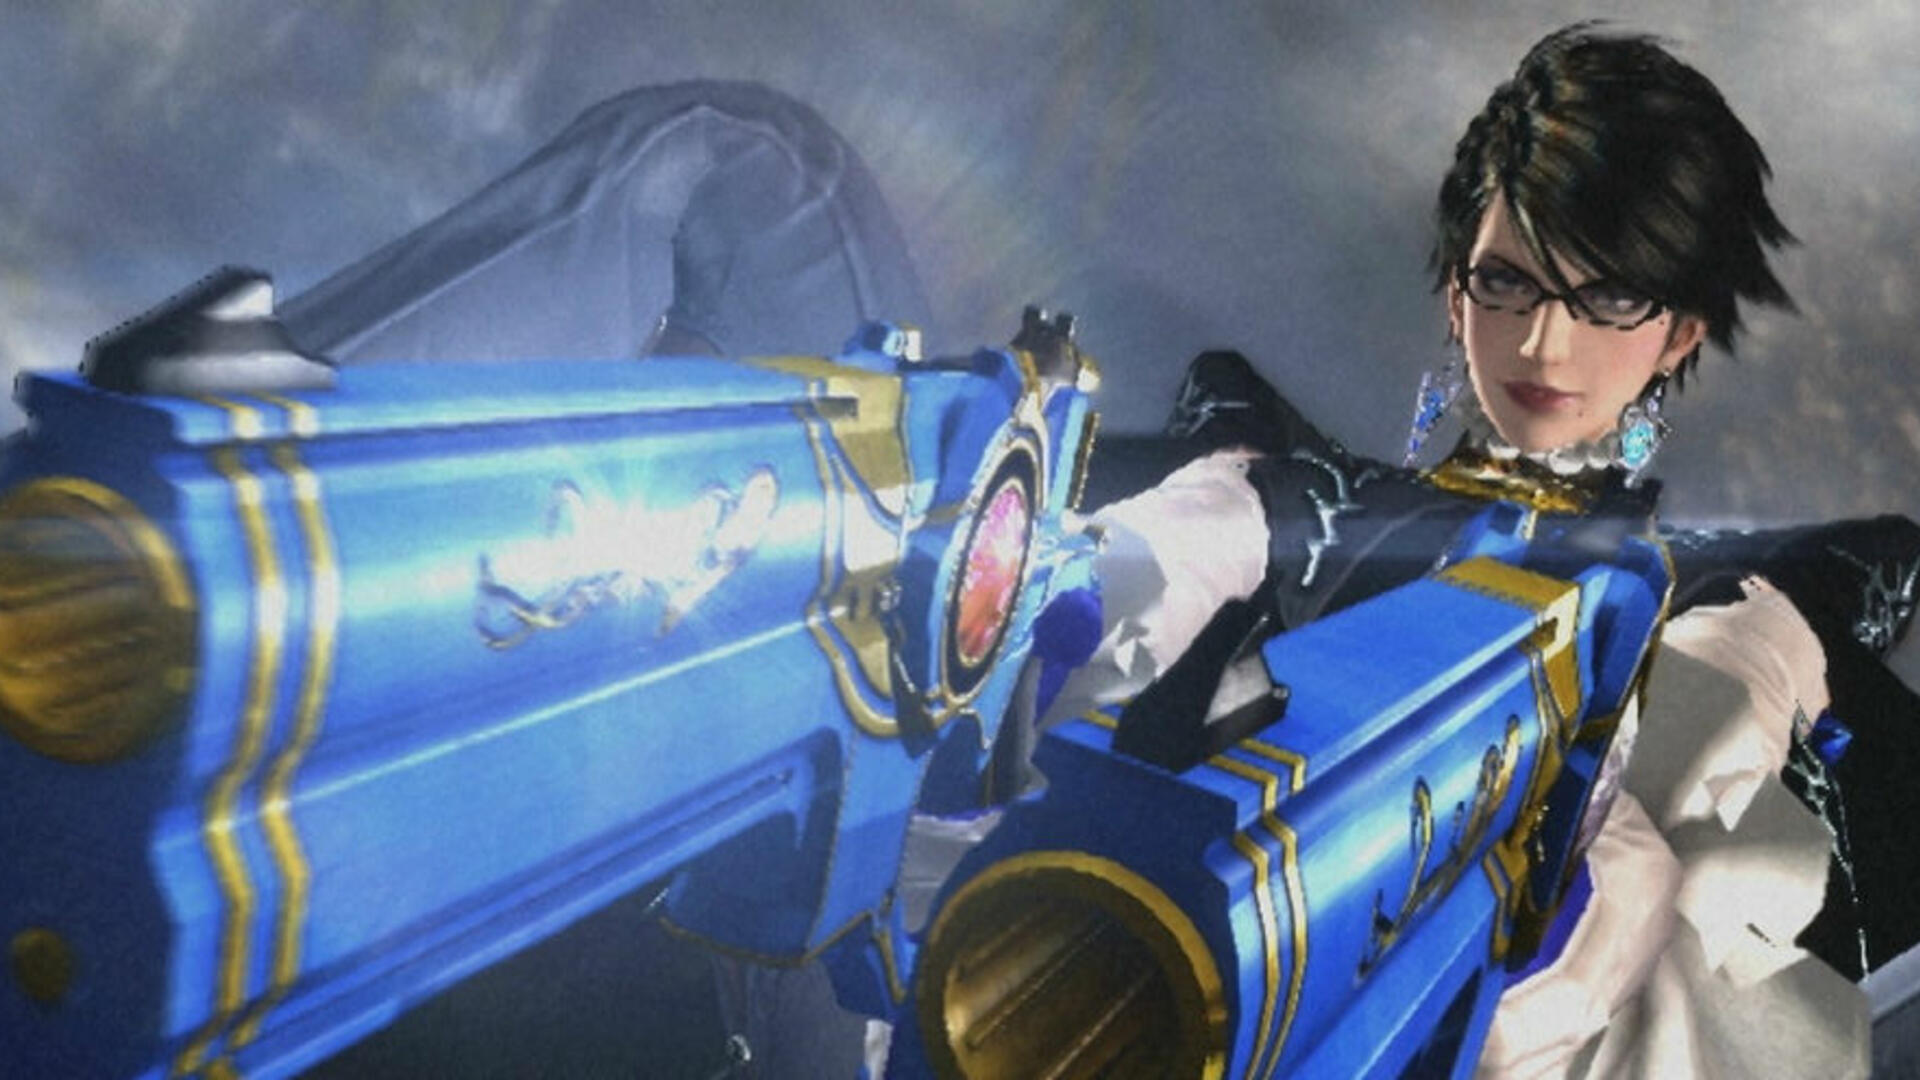 Bayonetta 3 In Development For Nintendo Switch, Bayonetta 1 & 2 Coming As Well